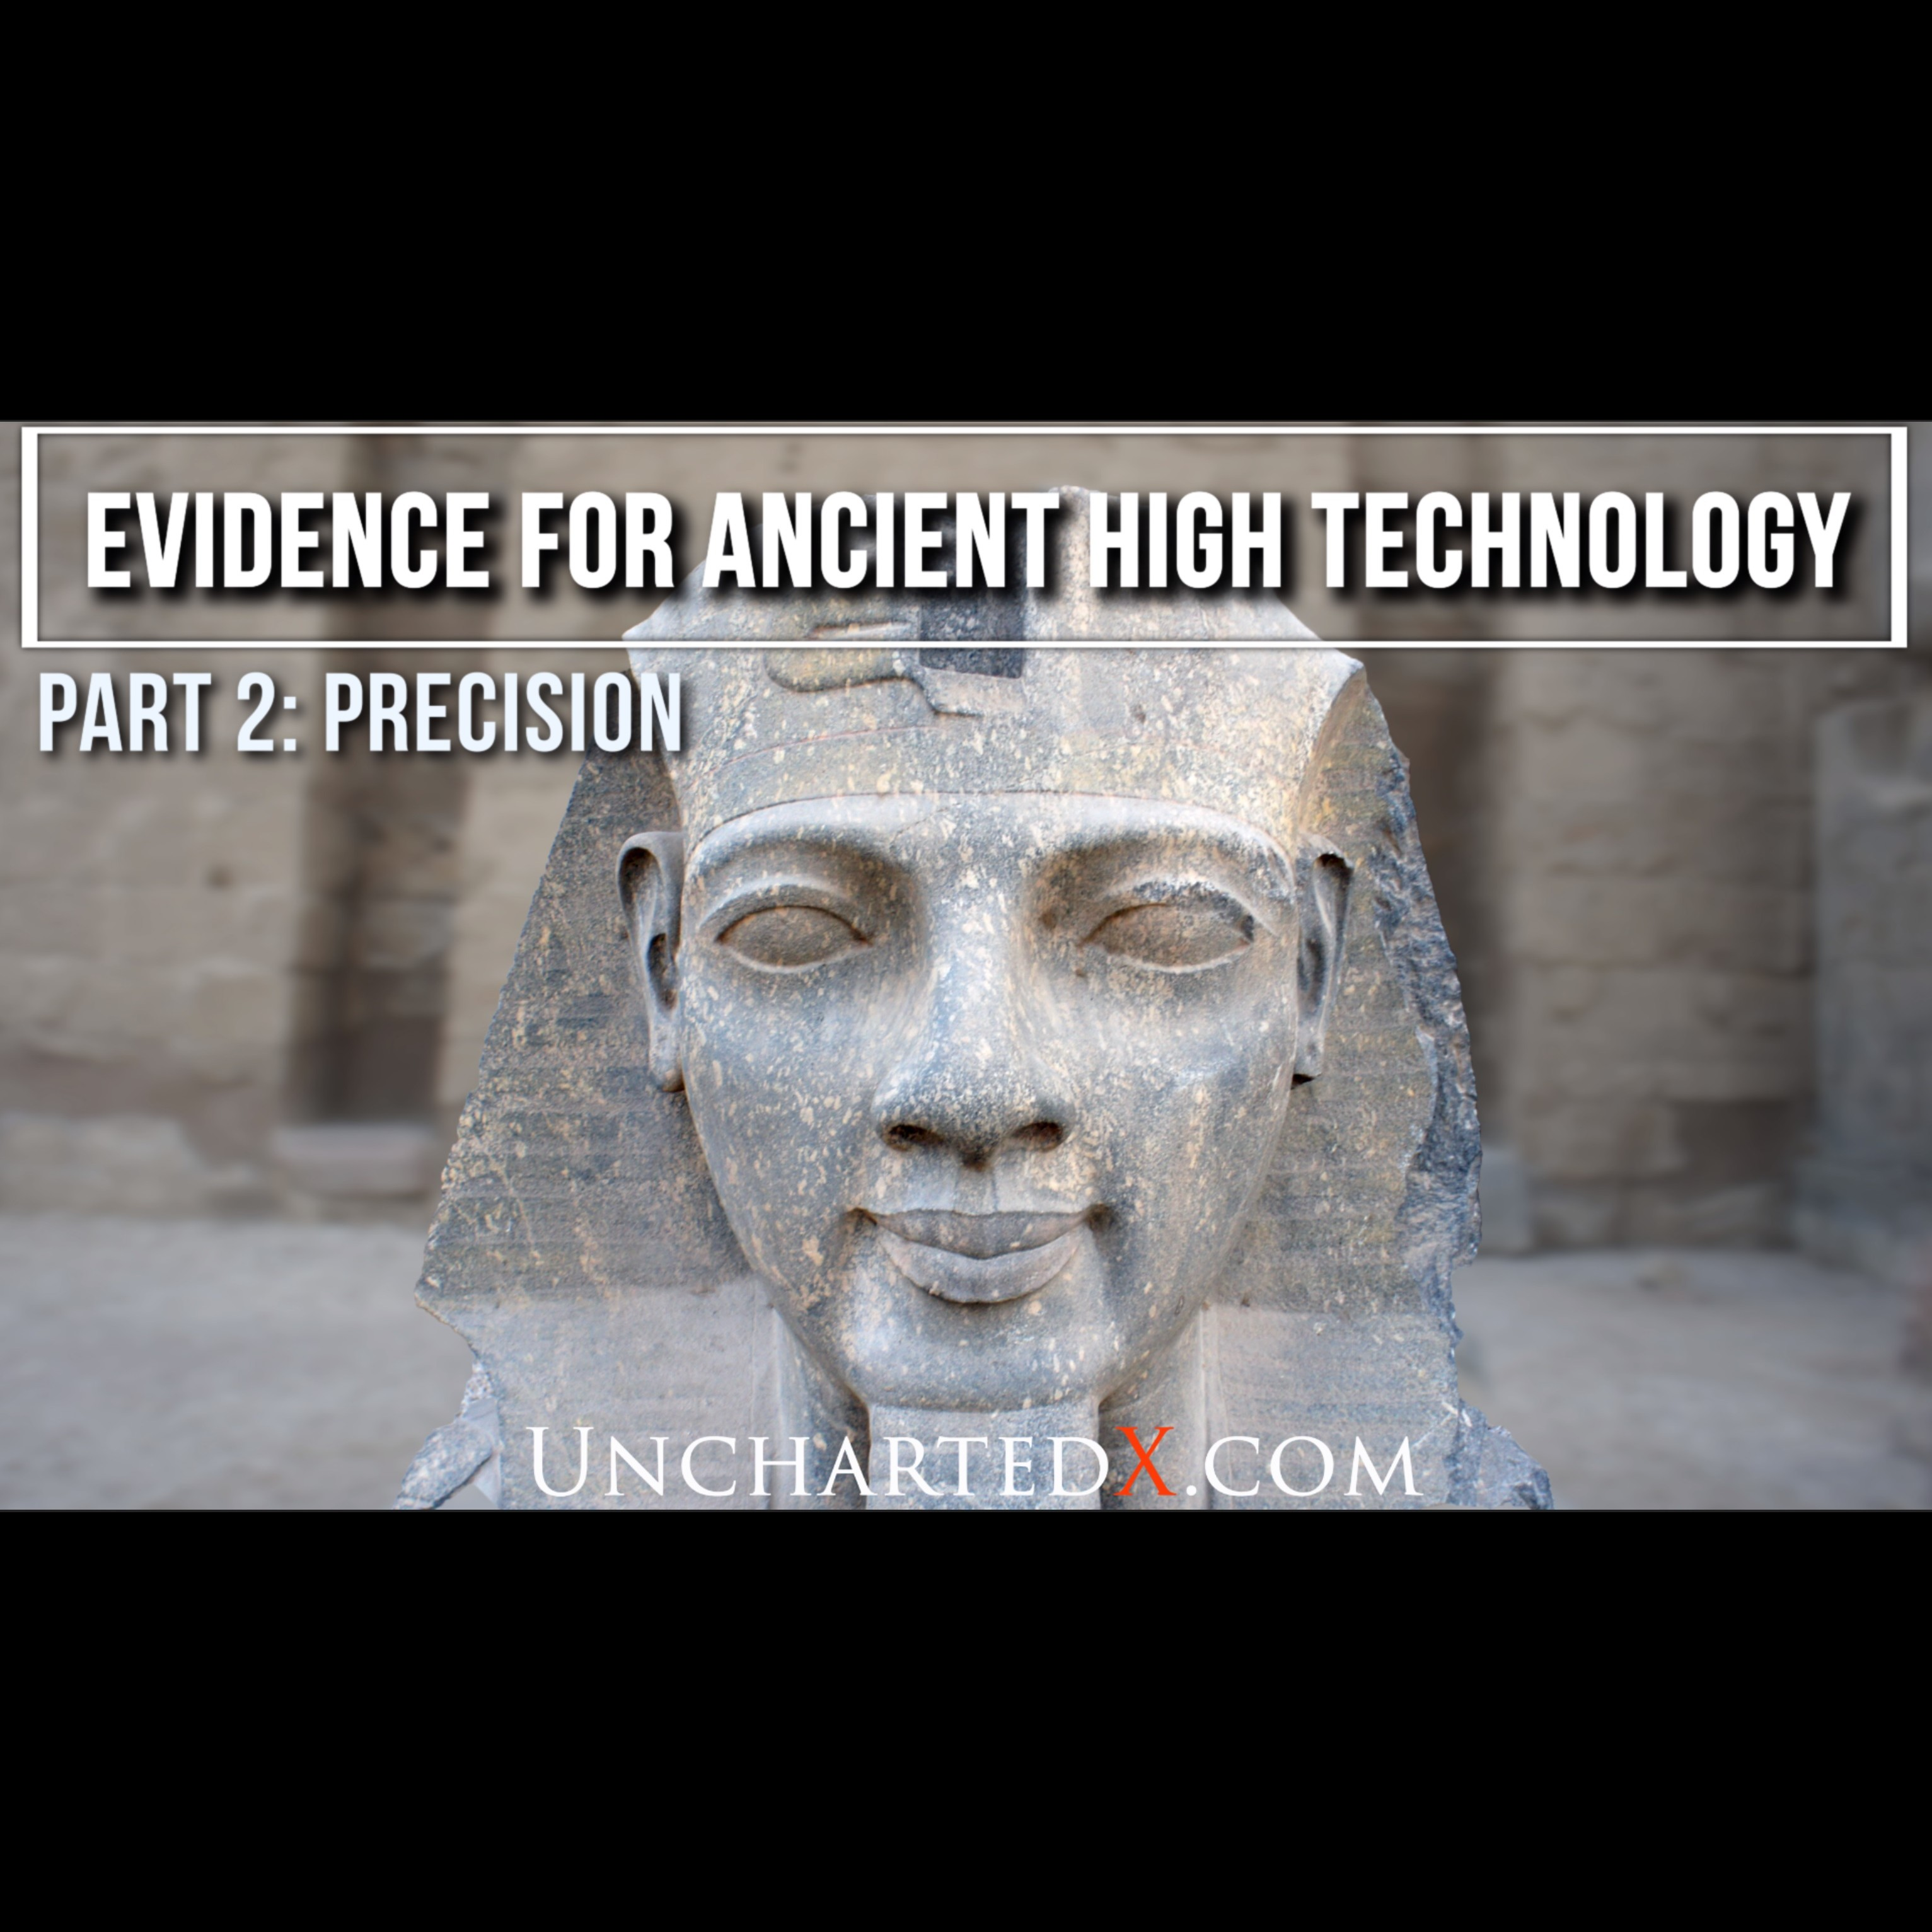 016: Precision! The Evidence for Ancient High Technology - Part 2